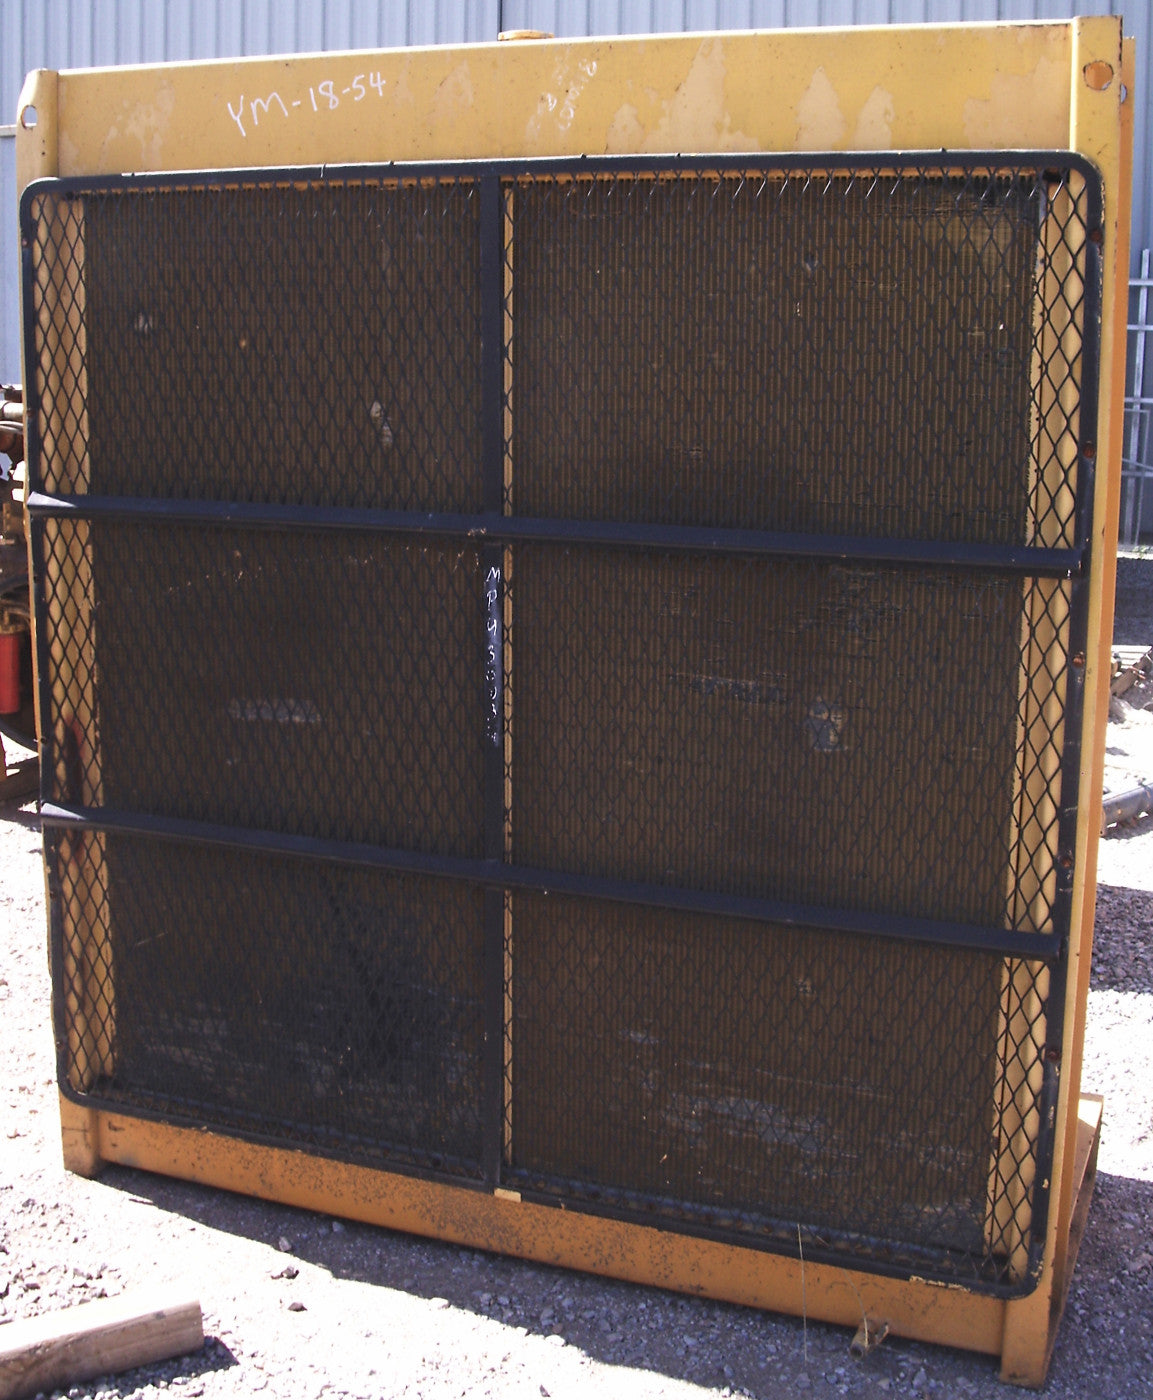 CATERPILLAR 32 SQ FT RADIATOR